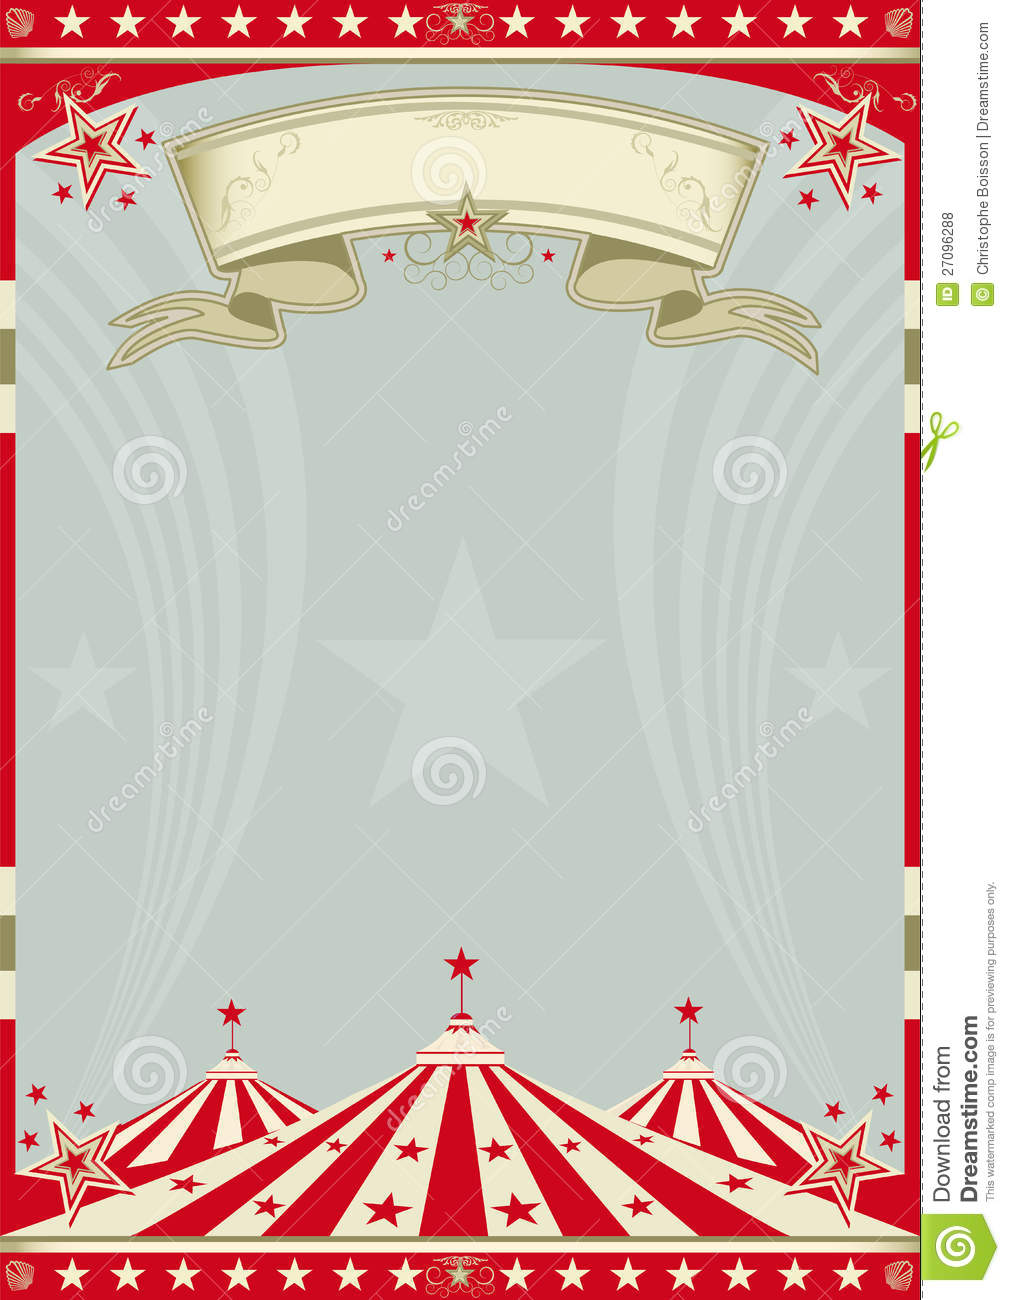 Carnival Theme Invitations as Elegant Design To Create Beautiful Invitation Template